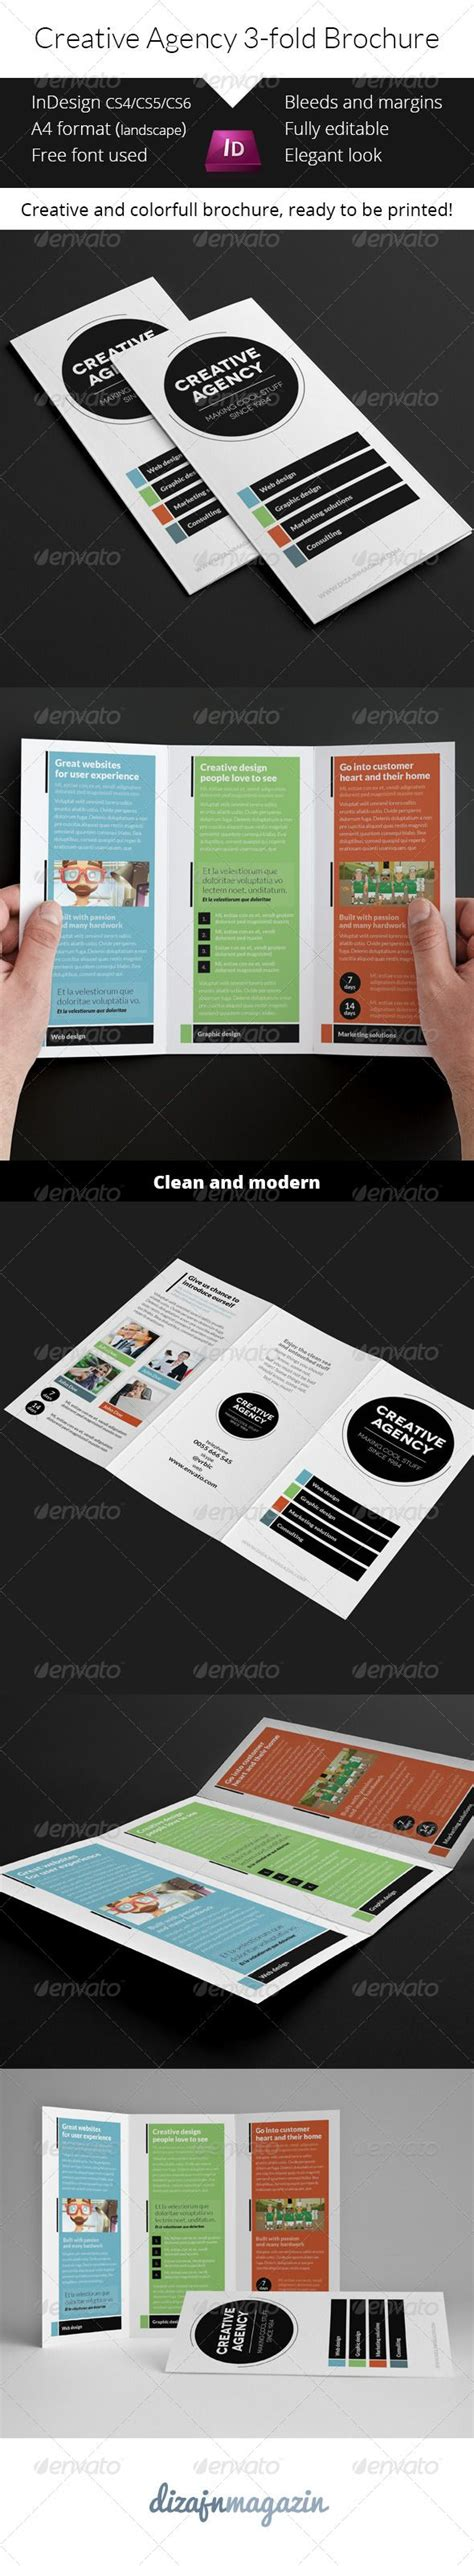 1000 images about design template on pinterest creative